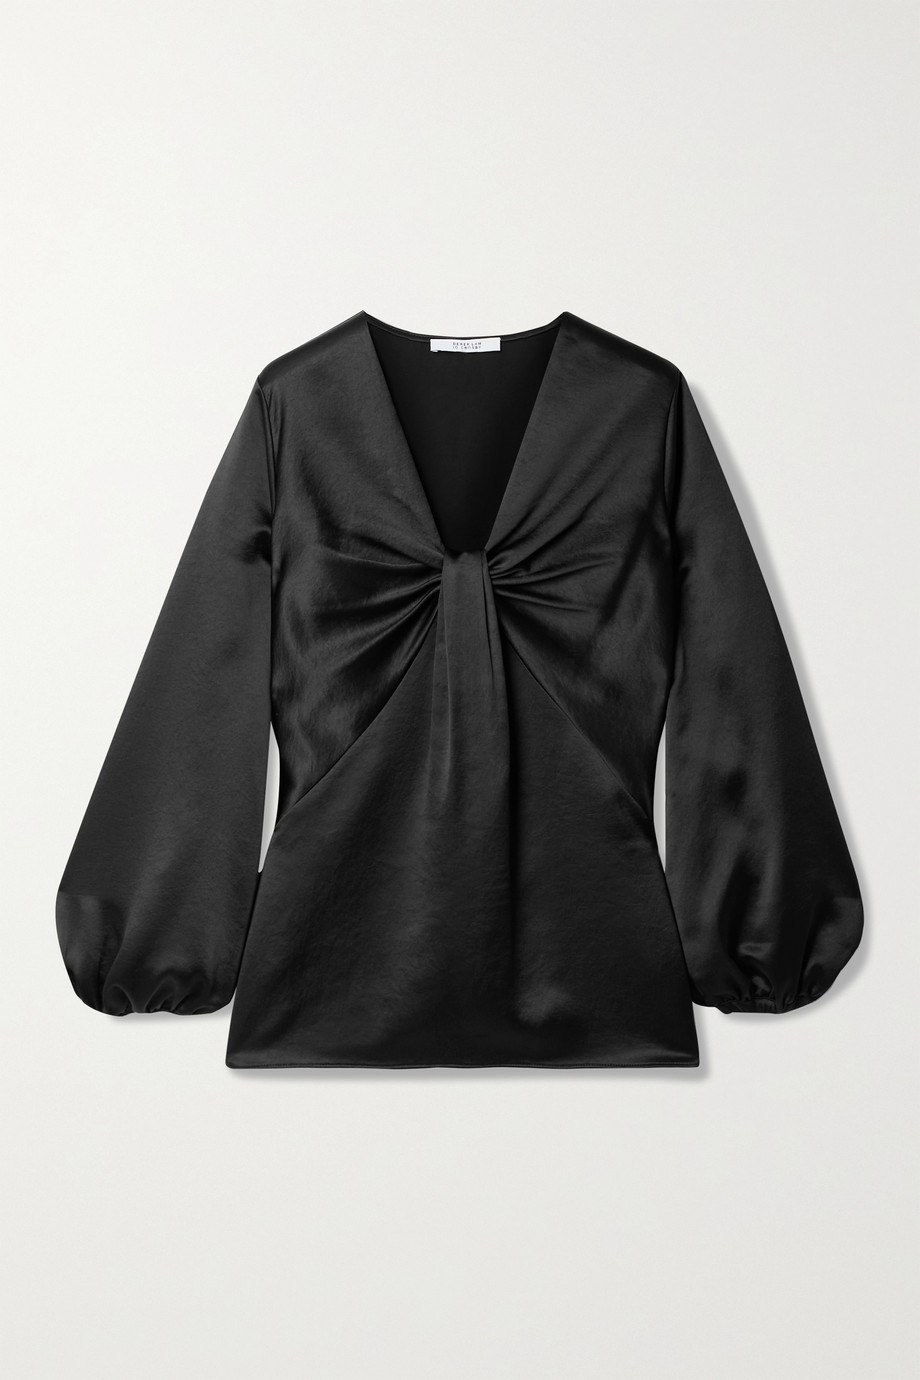 Derek Lam 10 Crosby Cailyn draped hammered-satin blouse